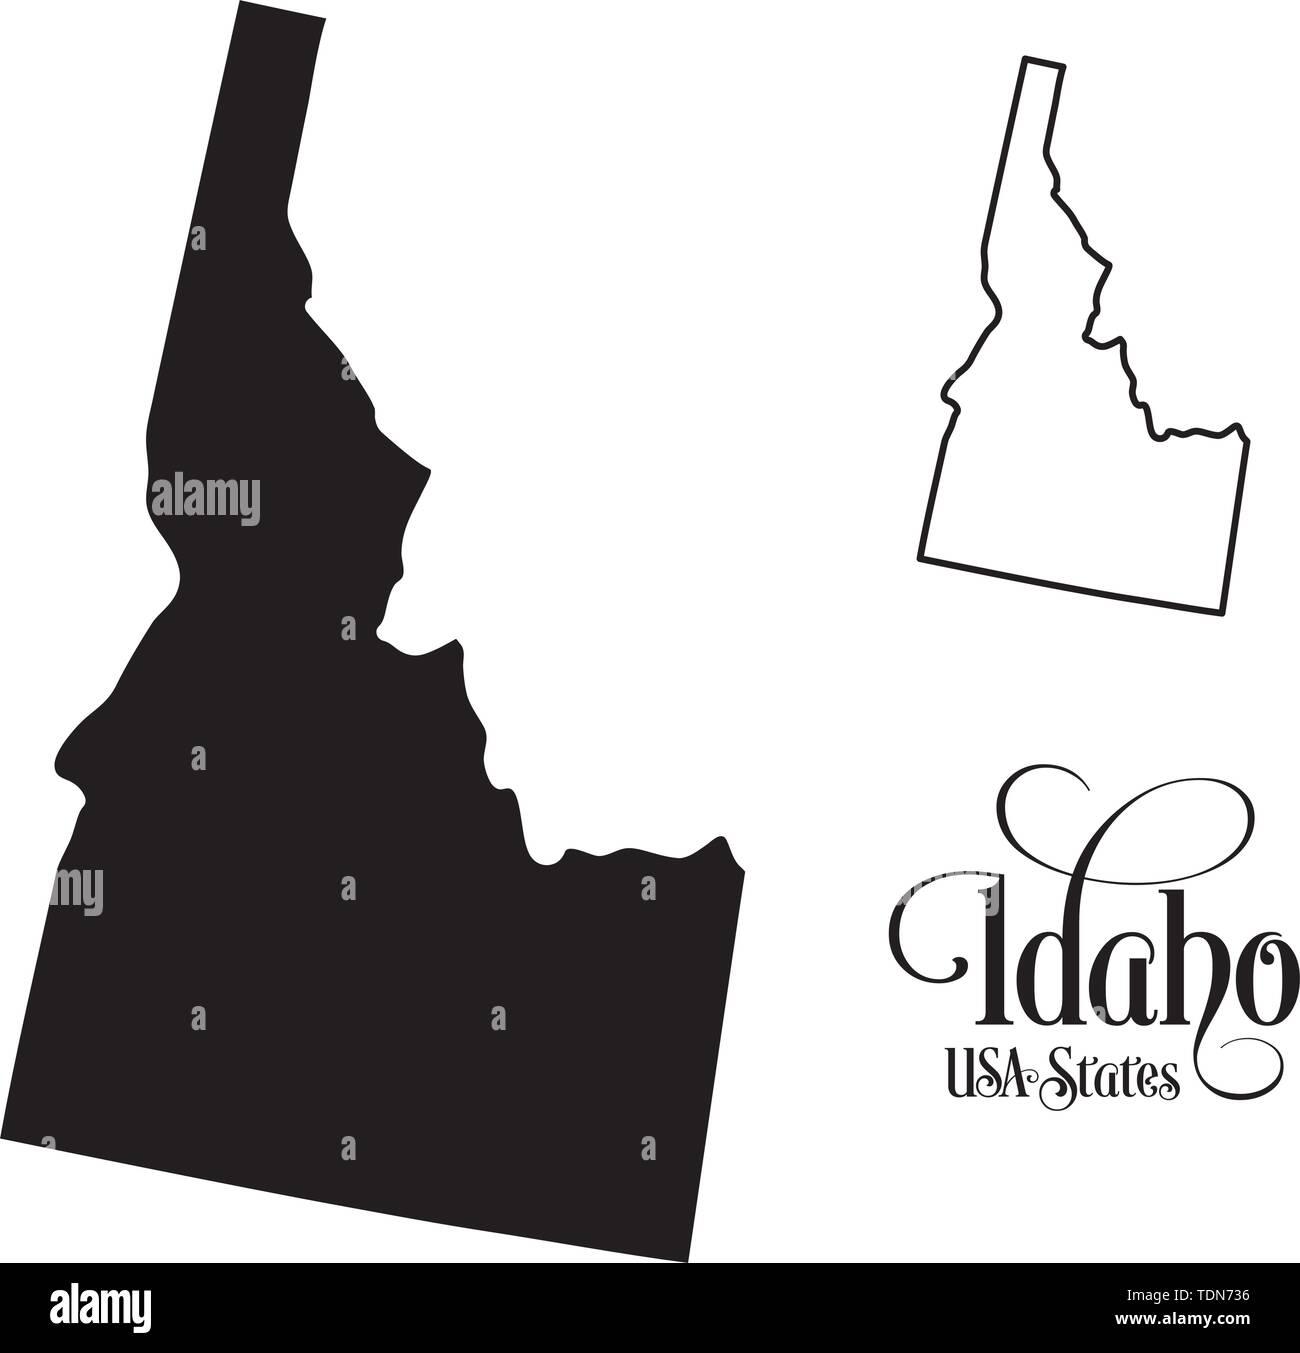 Map of The United States of America (USA) State of Idaho - Illustration on White Background. - Stock Vector